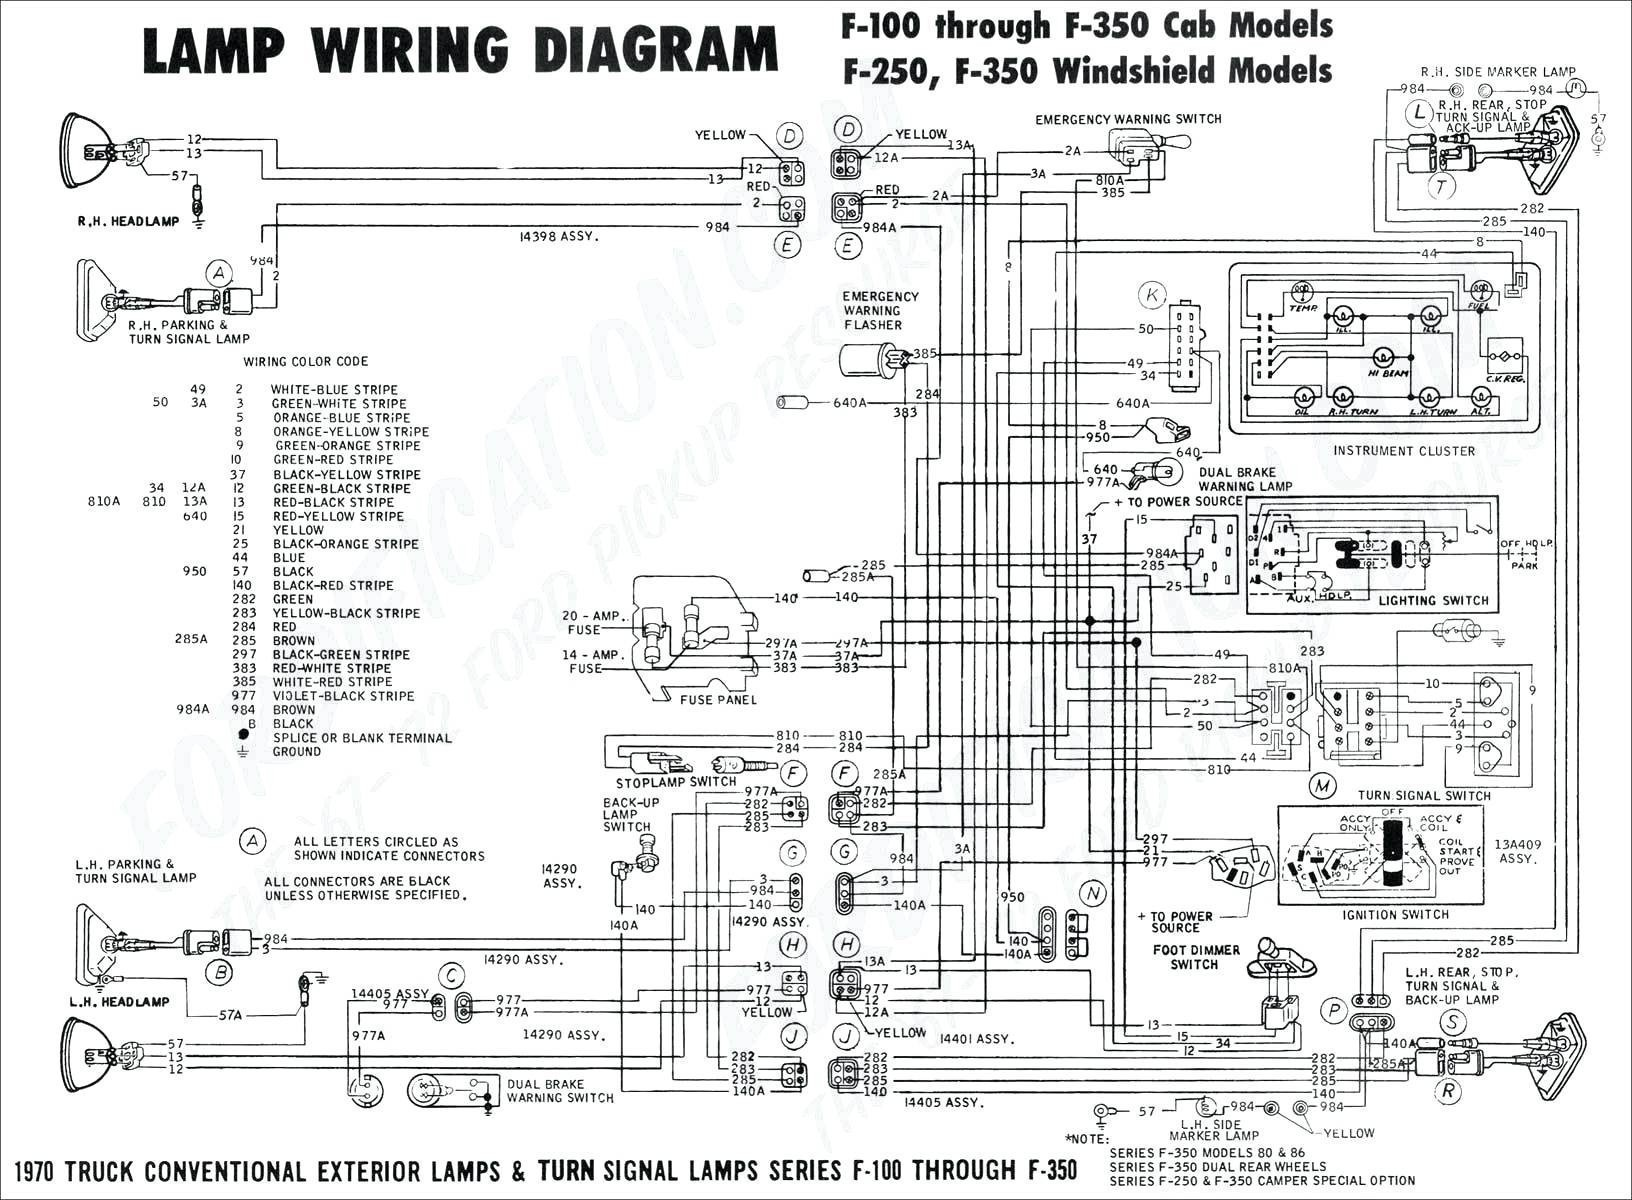 1999 Volkswagen Beetle Engine Diagram Vw R32 Wiring Diagram Experts Wiring Diagram • Of 1999 Volkswagen Beetle Engine Diagram